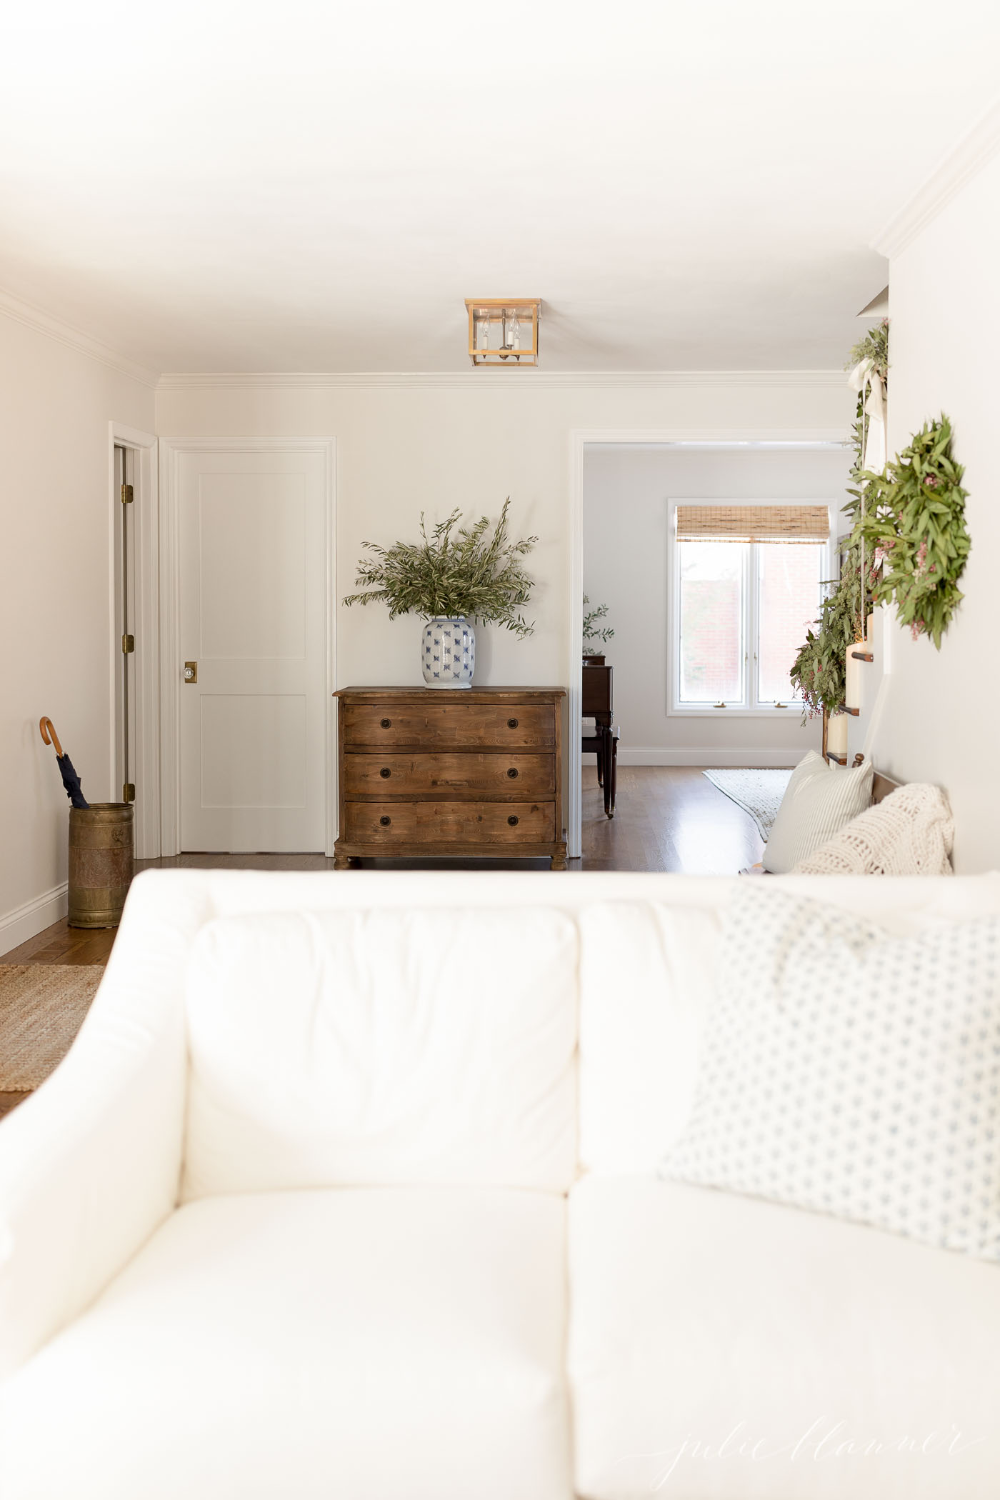 Get all the details about purchasing a Pottery Barn Sofa